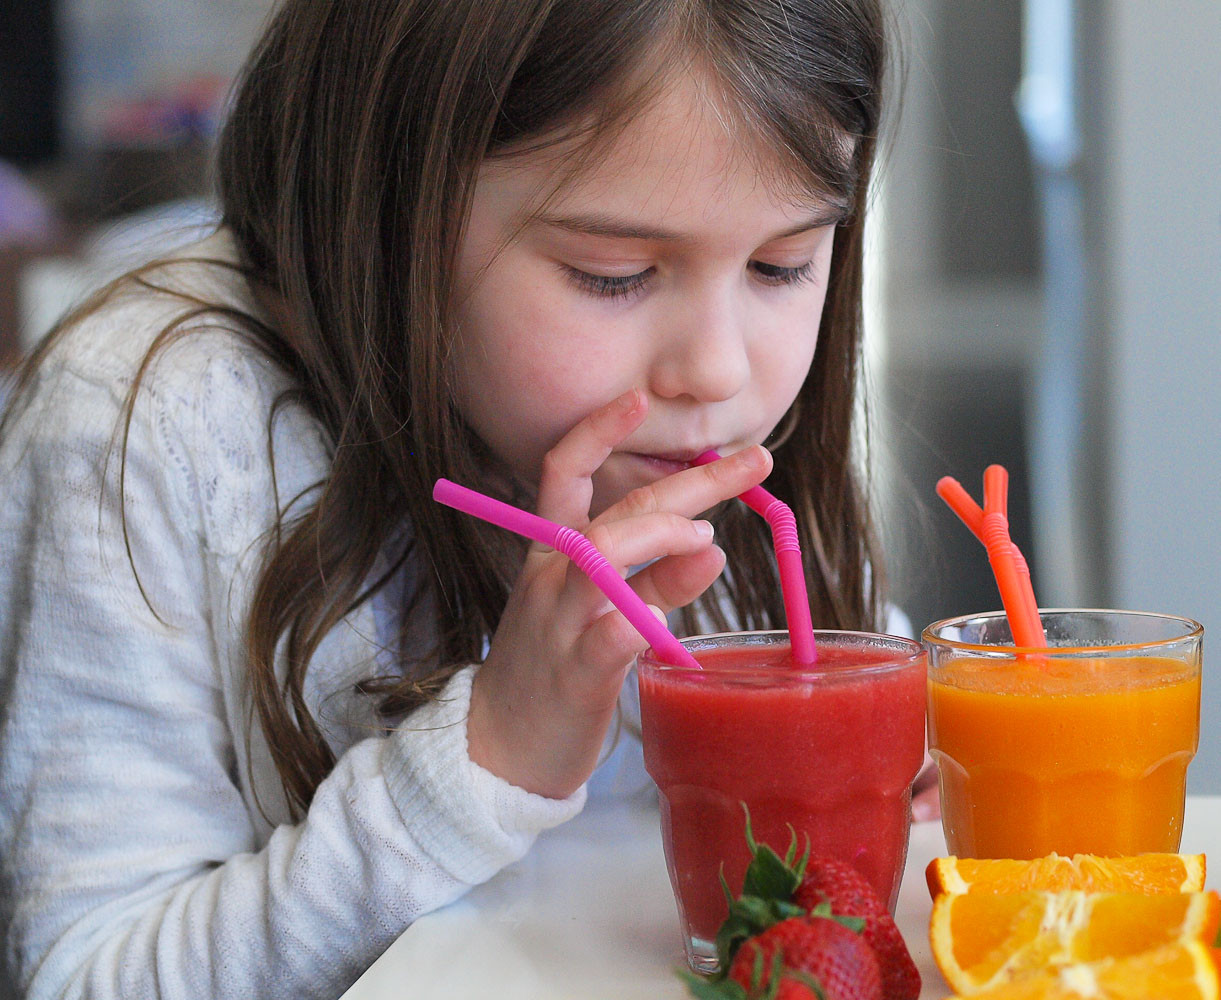 Best Tasting Healthy Smoothies  Rainbow Smoothies A Tasting Activity for Kids Happy